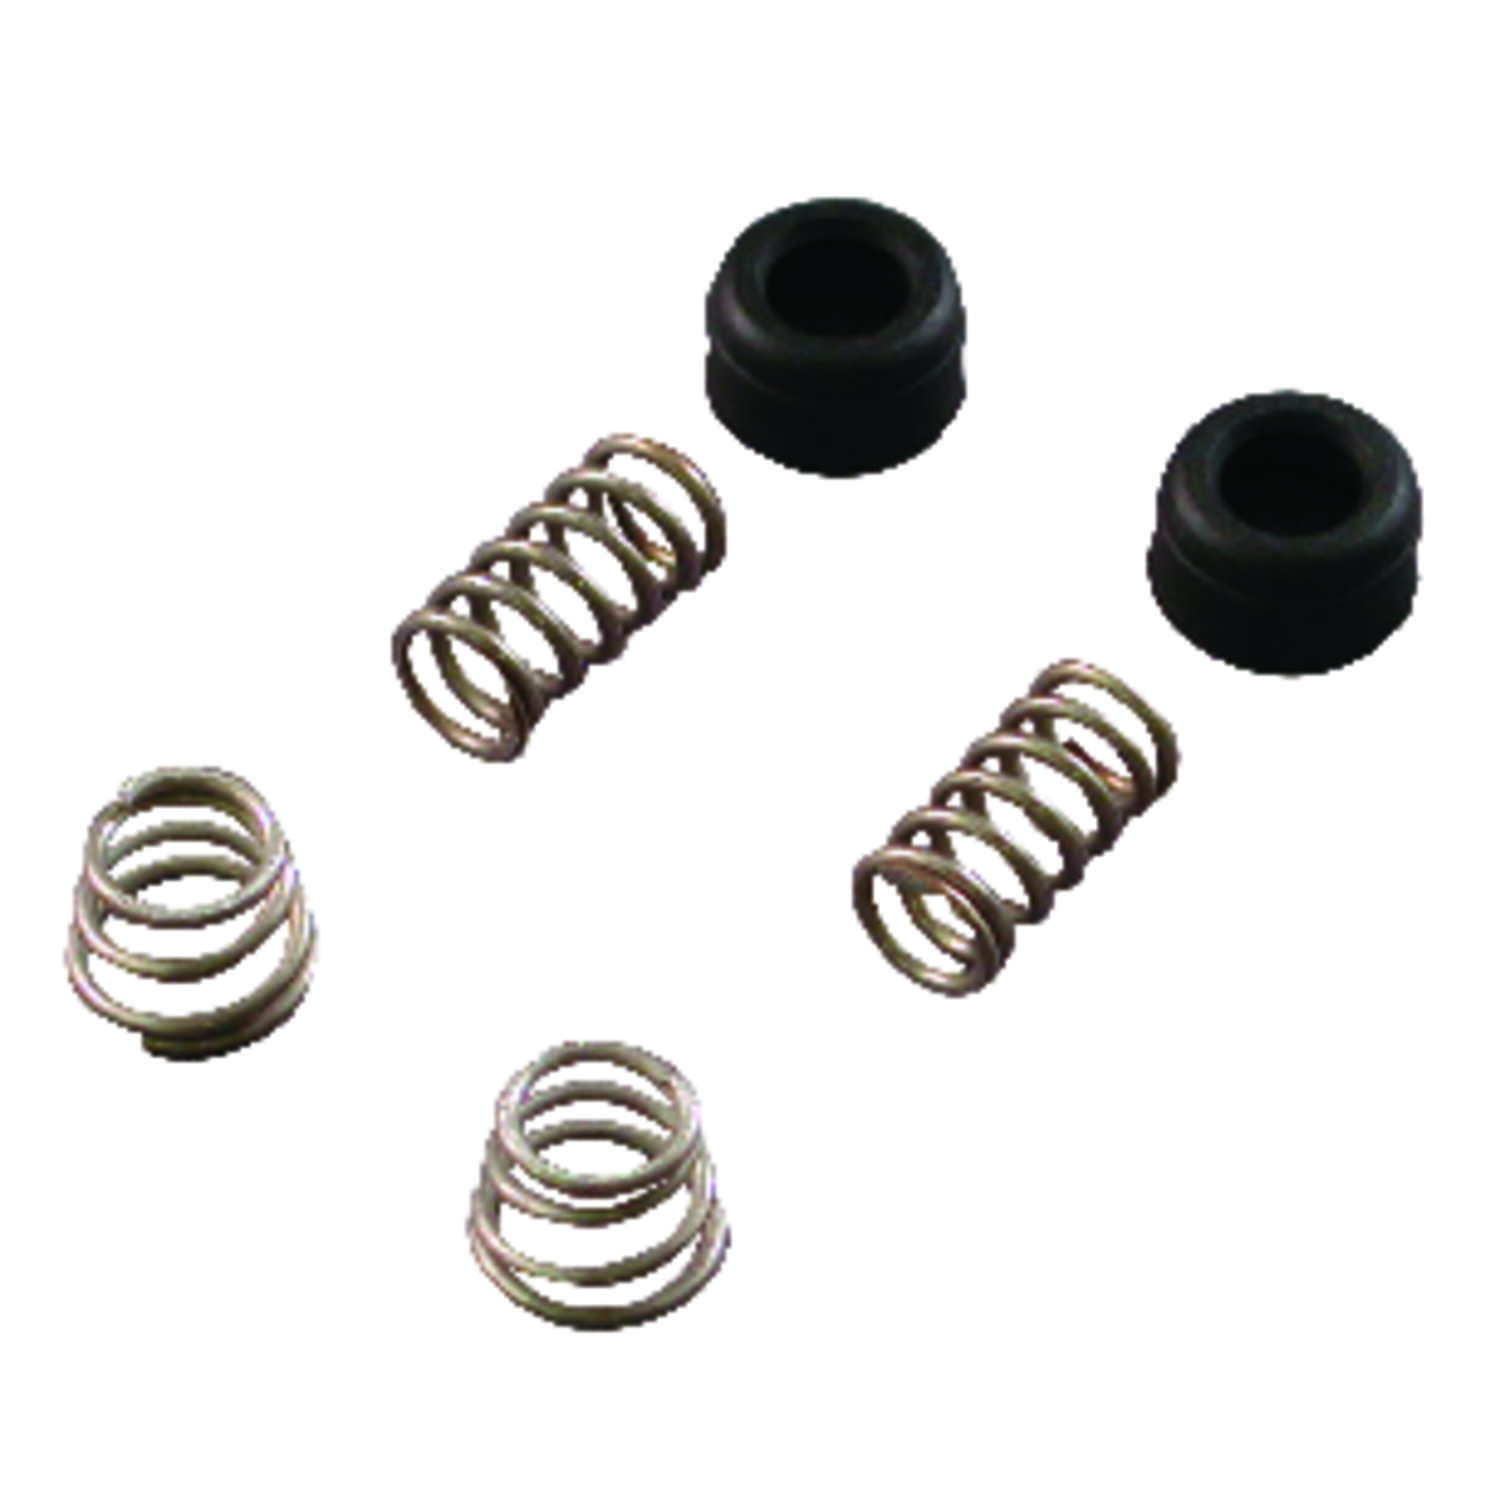 Ace  1/2-24 in. DL17  Rubber / Stainless Steel  Faucet Seats and Springs Kit  Delta  1 pk